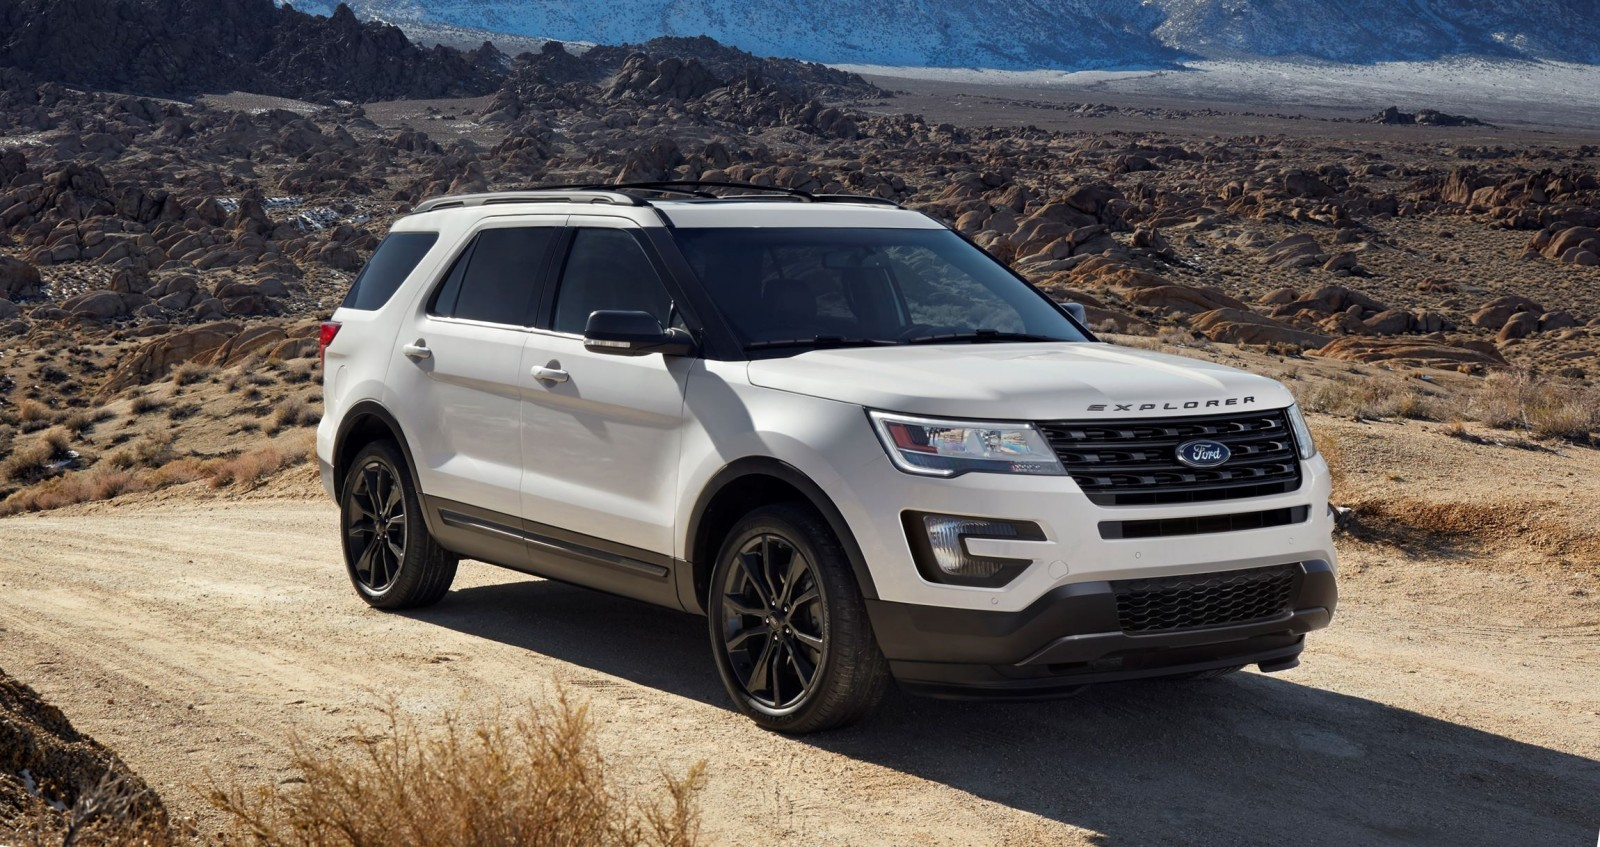 2017 ford explorer xlt sport pack is high impact styling upgrade with blacked out trims new led. Black Bedroom Furniture Sets. Home Design Ideas